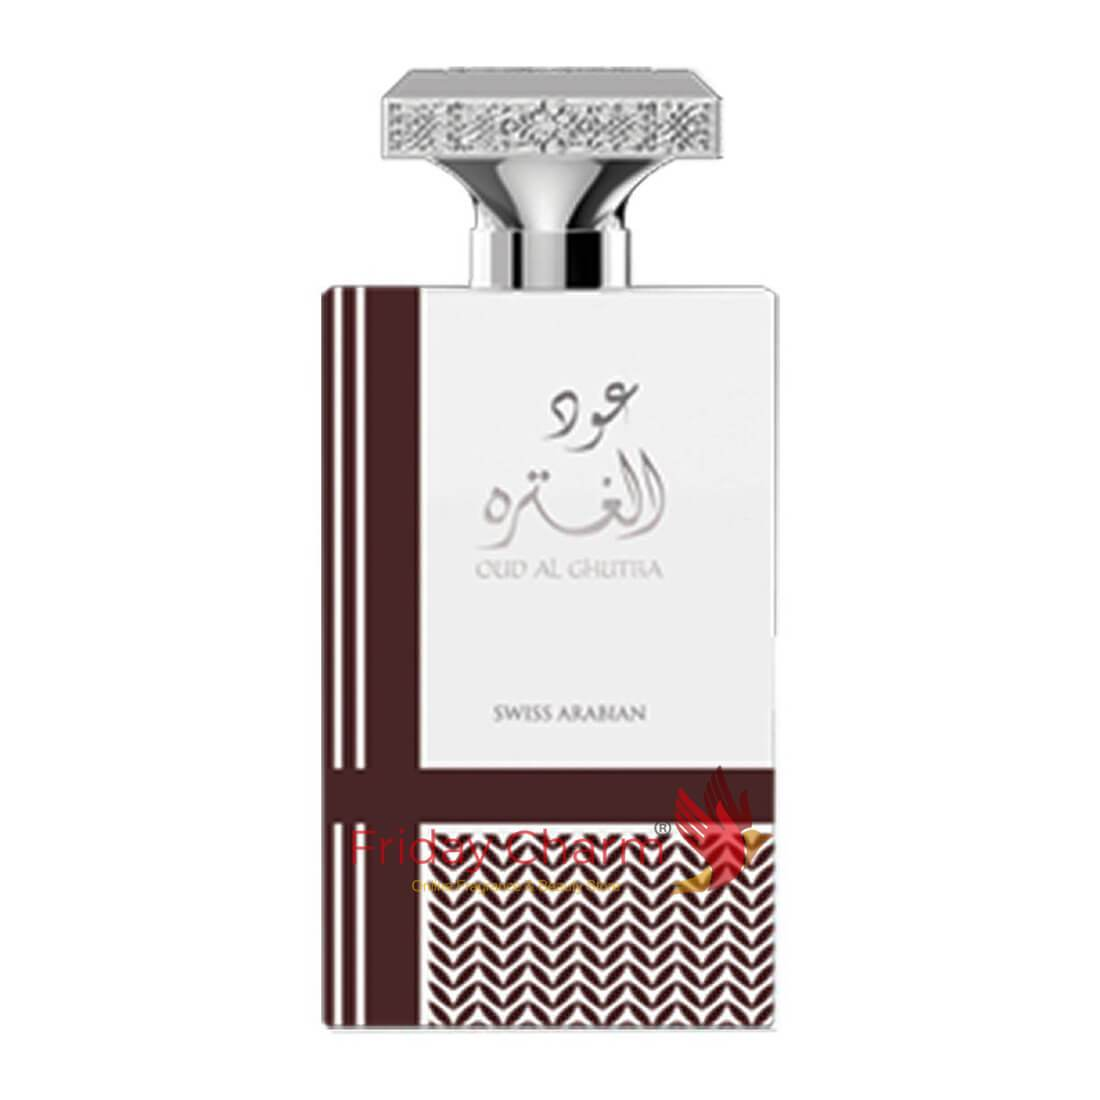 Swiss Arabian Oud Al Ghutra Eau De Perfume For Men - 100ml